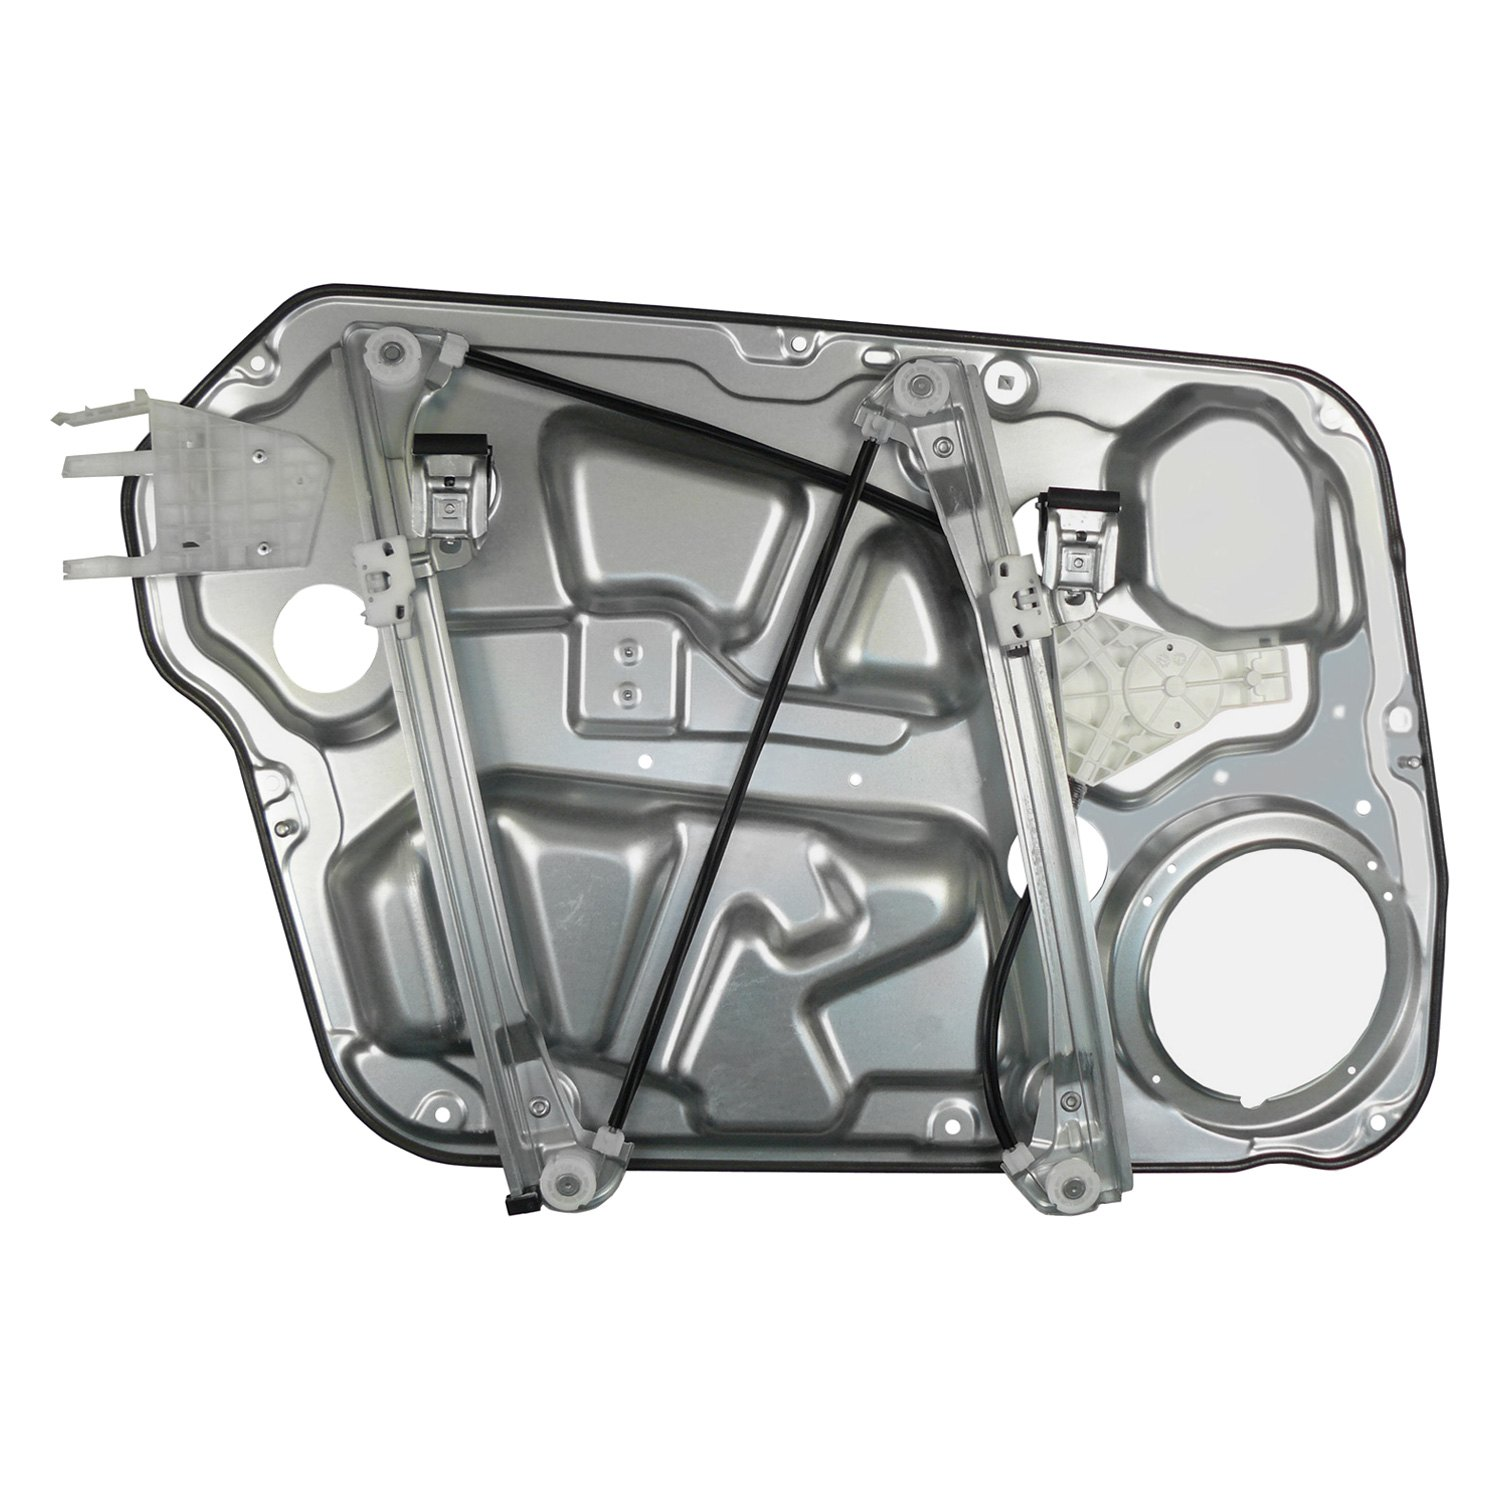 ACDelco 11R634 Professional Front Passenger Side Power Window Regulator without Motor